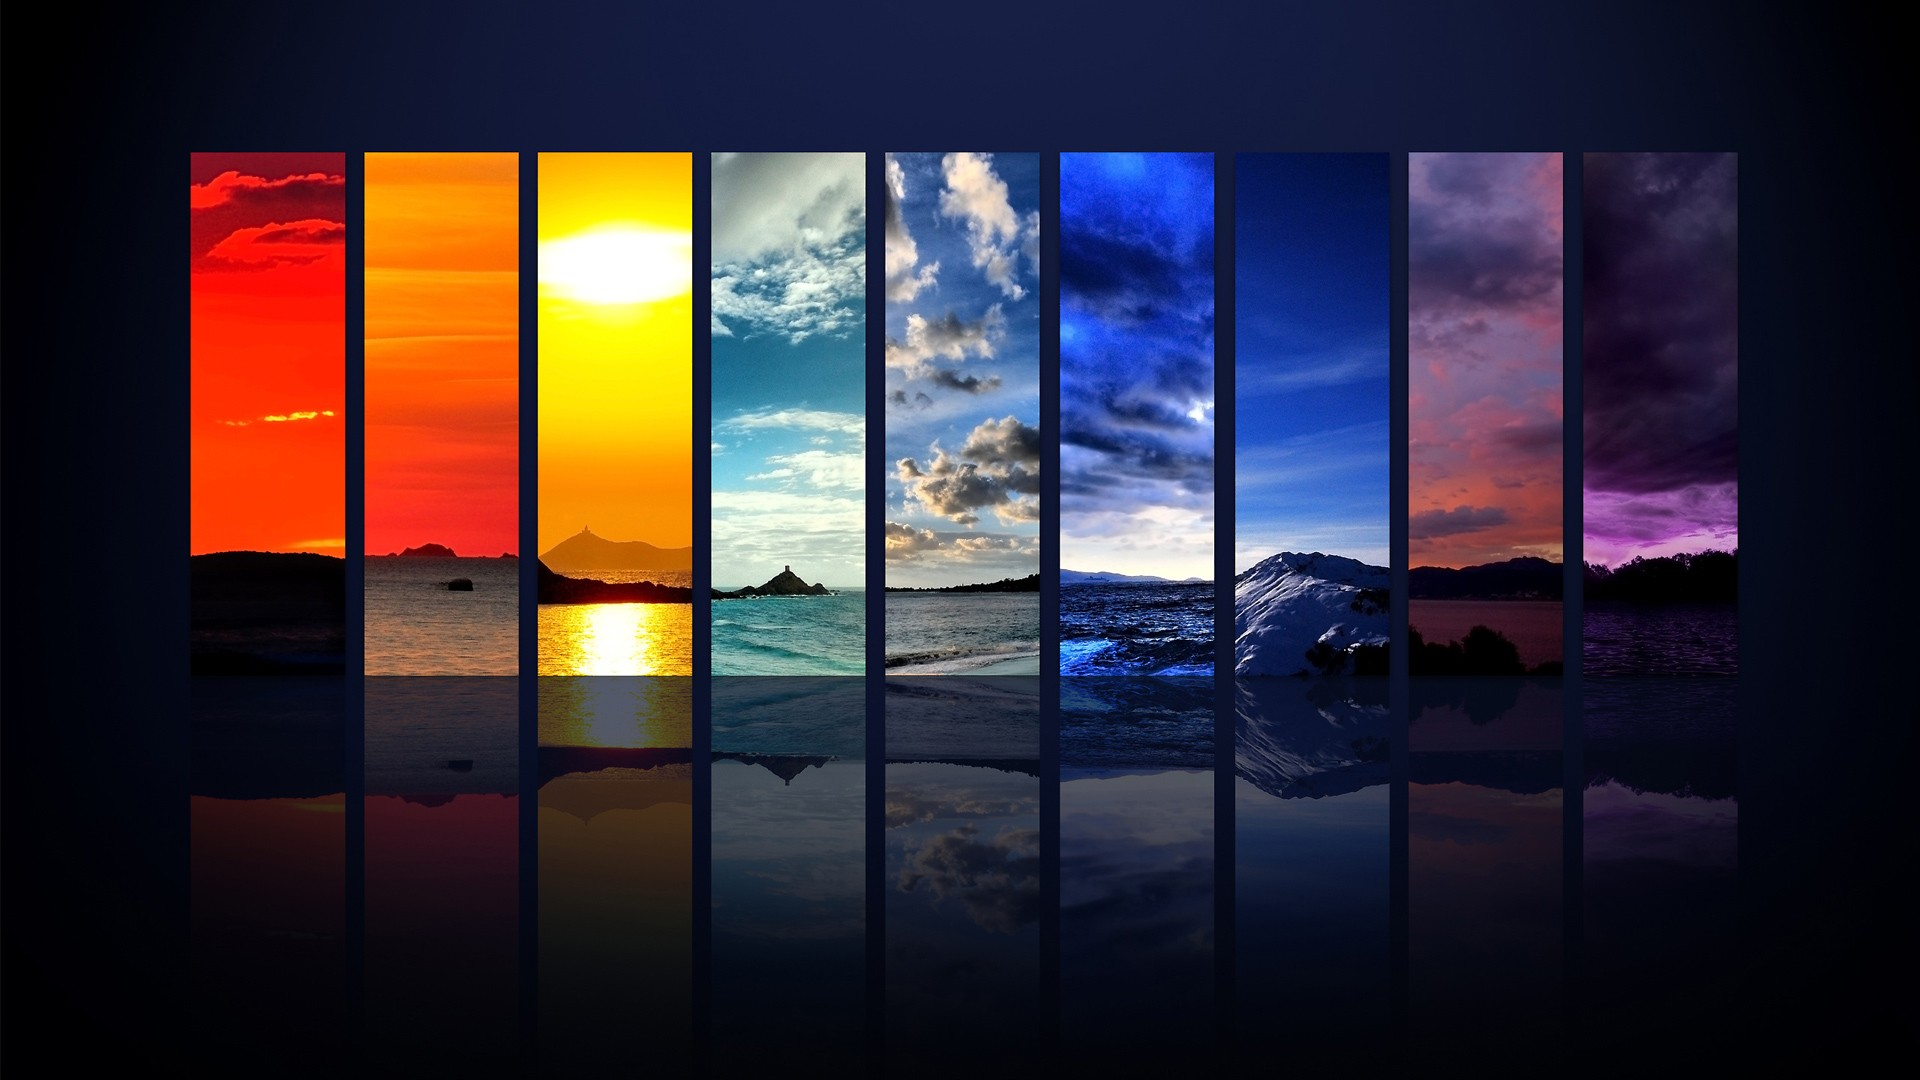 Awesome Wallpapers To Download For Your Desktop Background